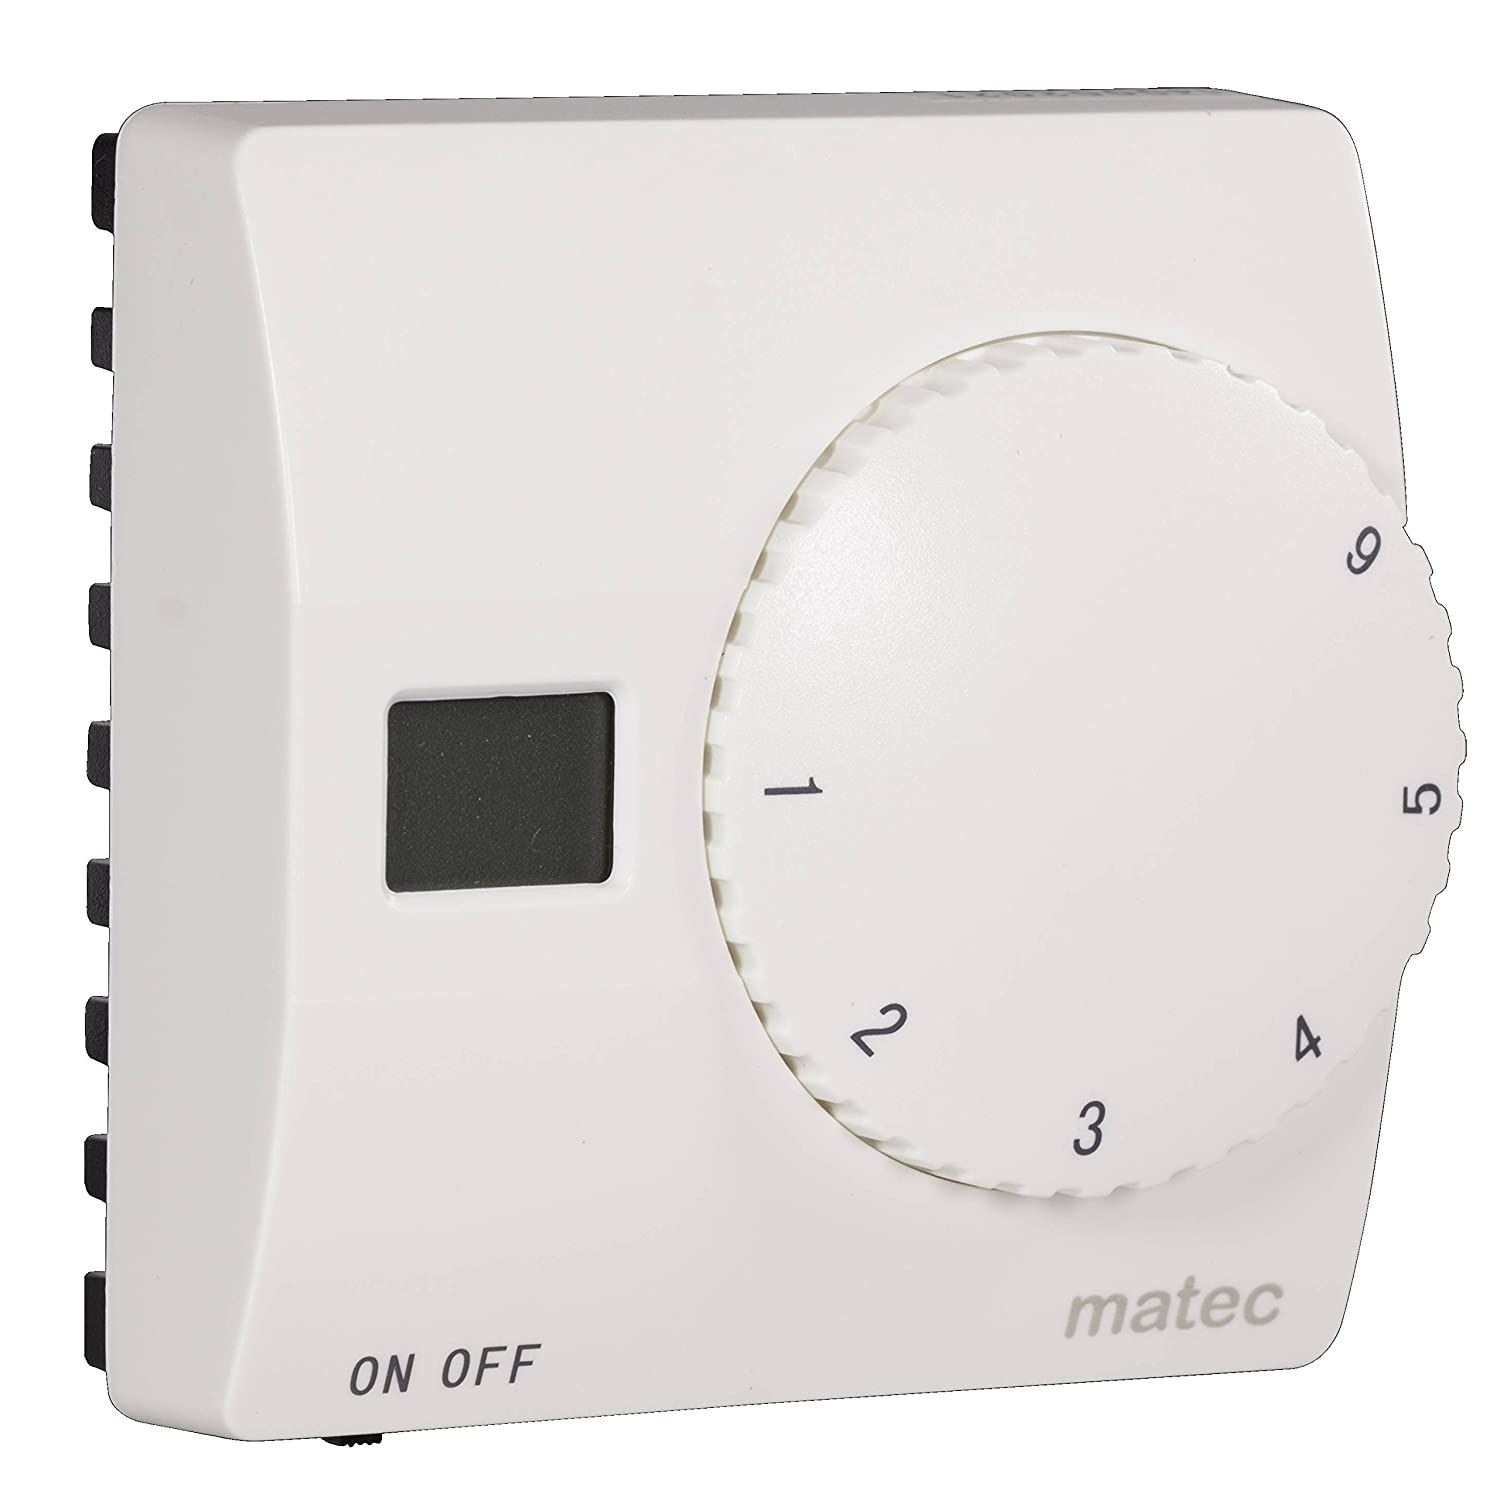 Matec Manual Thermostat RTS 01/A - Pack of 1: Amazon co uk